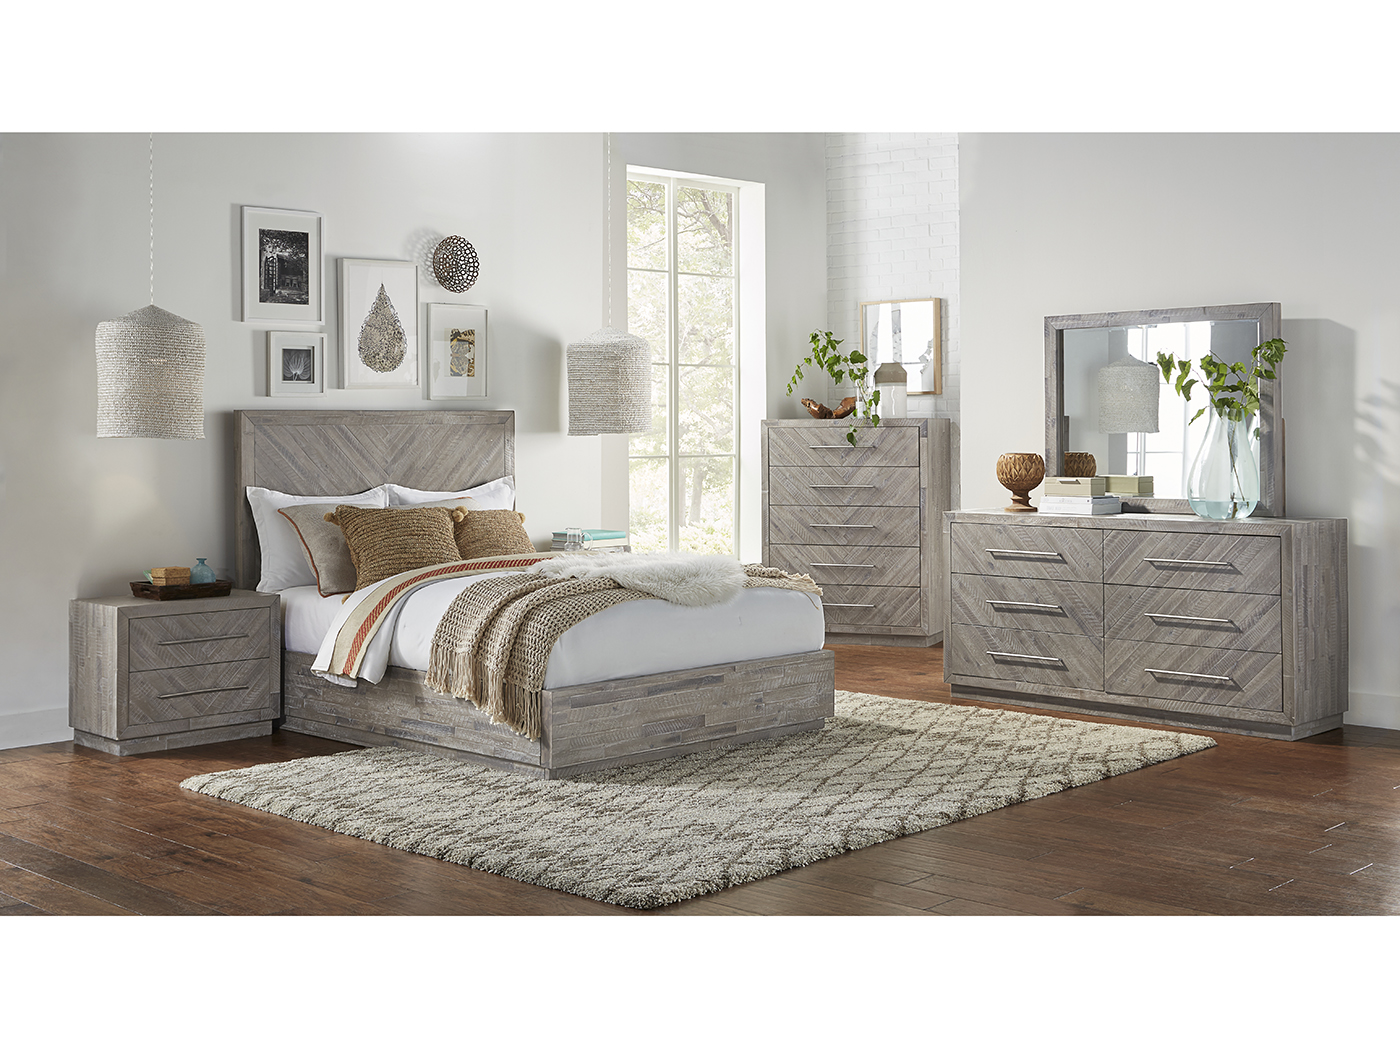 Alexandra King Platform Bed